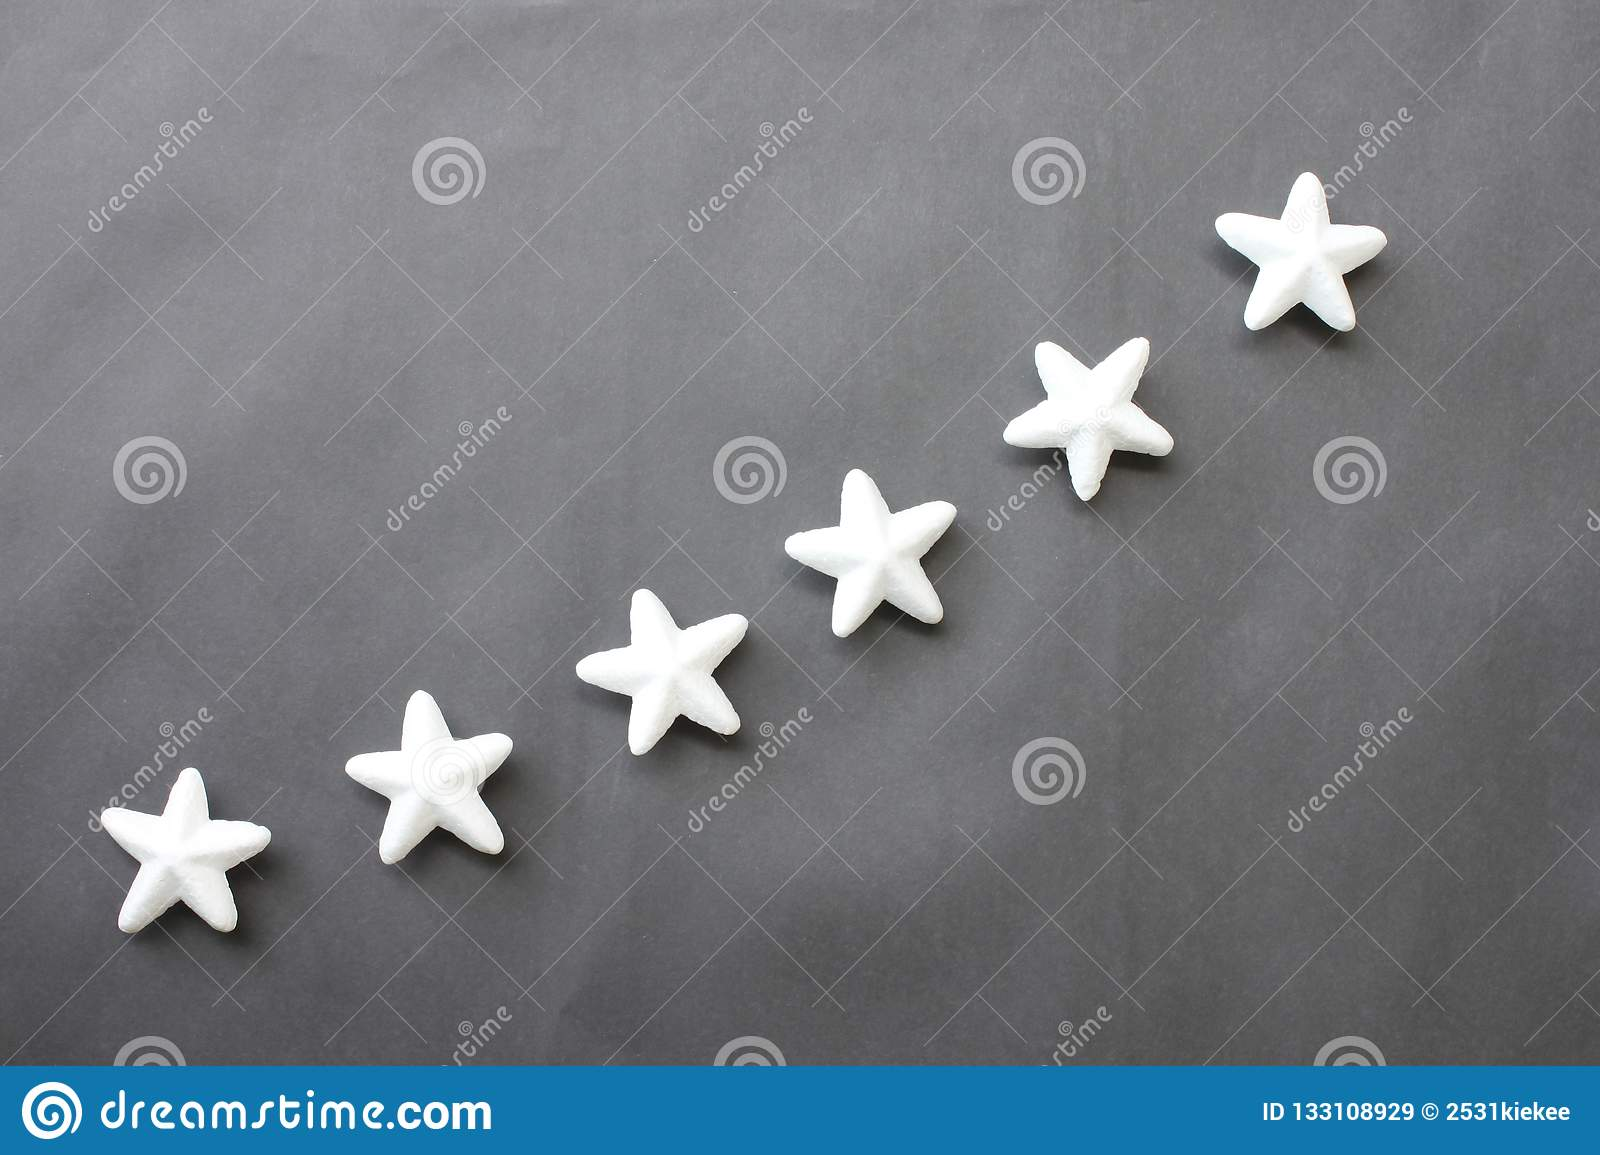 White Stars Are Placed On A Black Background For Business Ideas